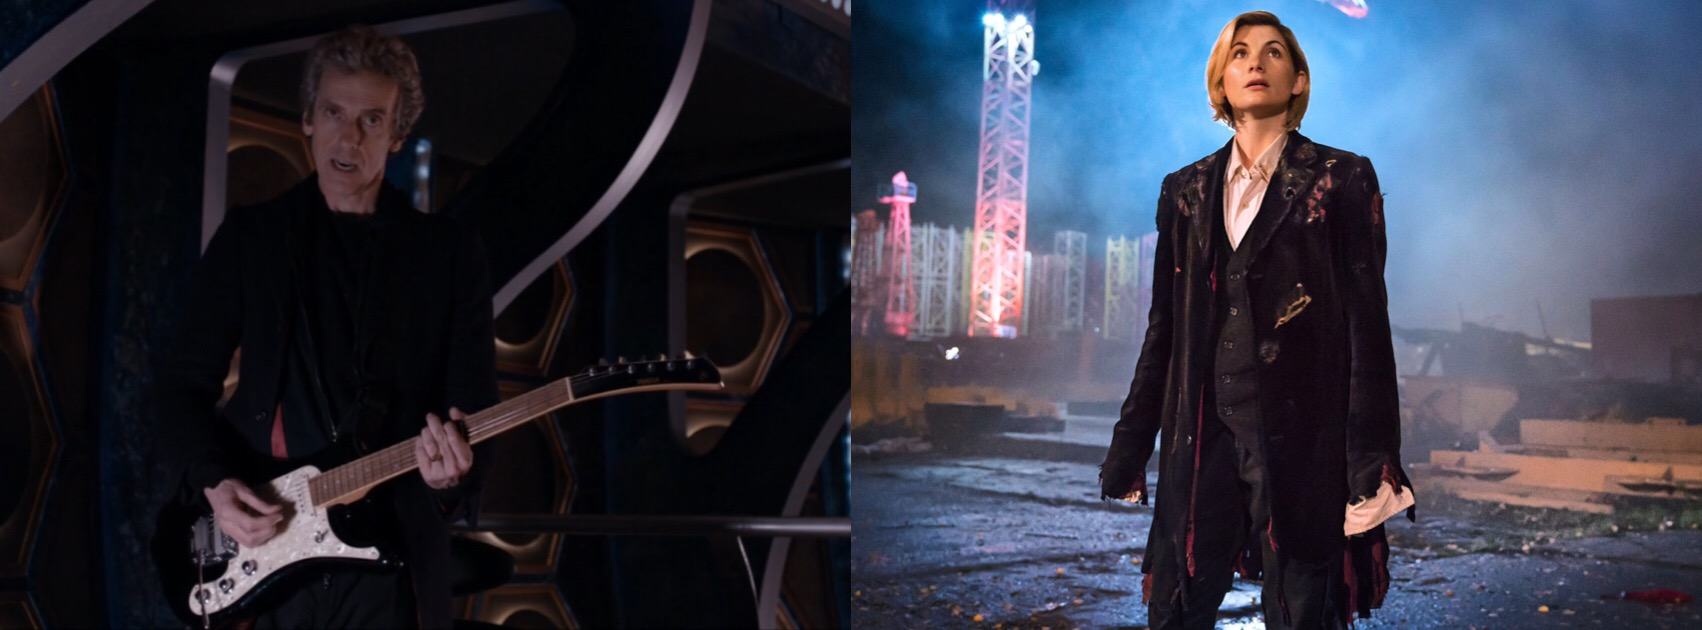 Doctor Who Series 9, 10, and 11 Scripts Available on BBC Writers' Room